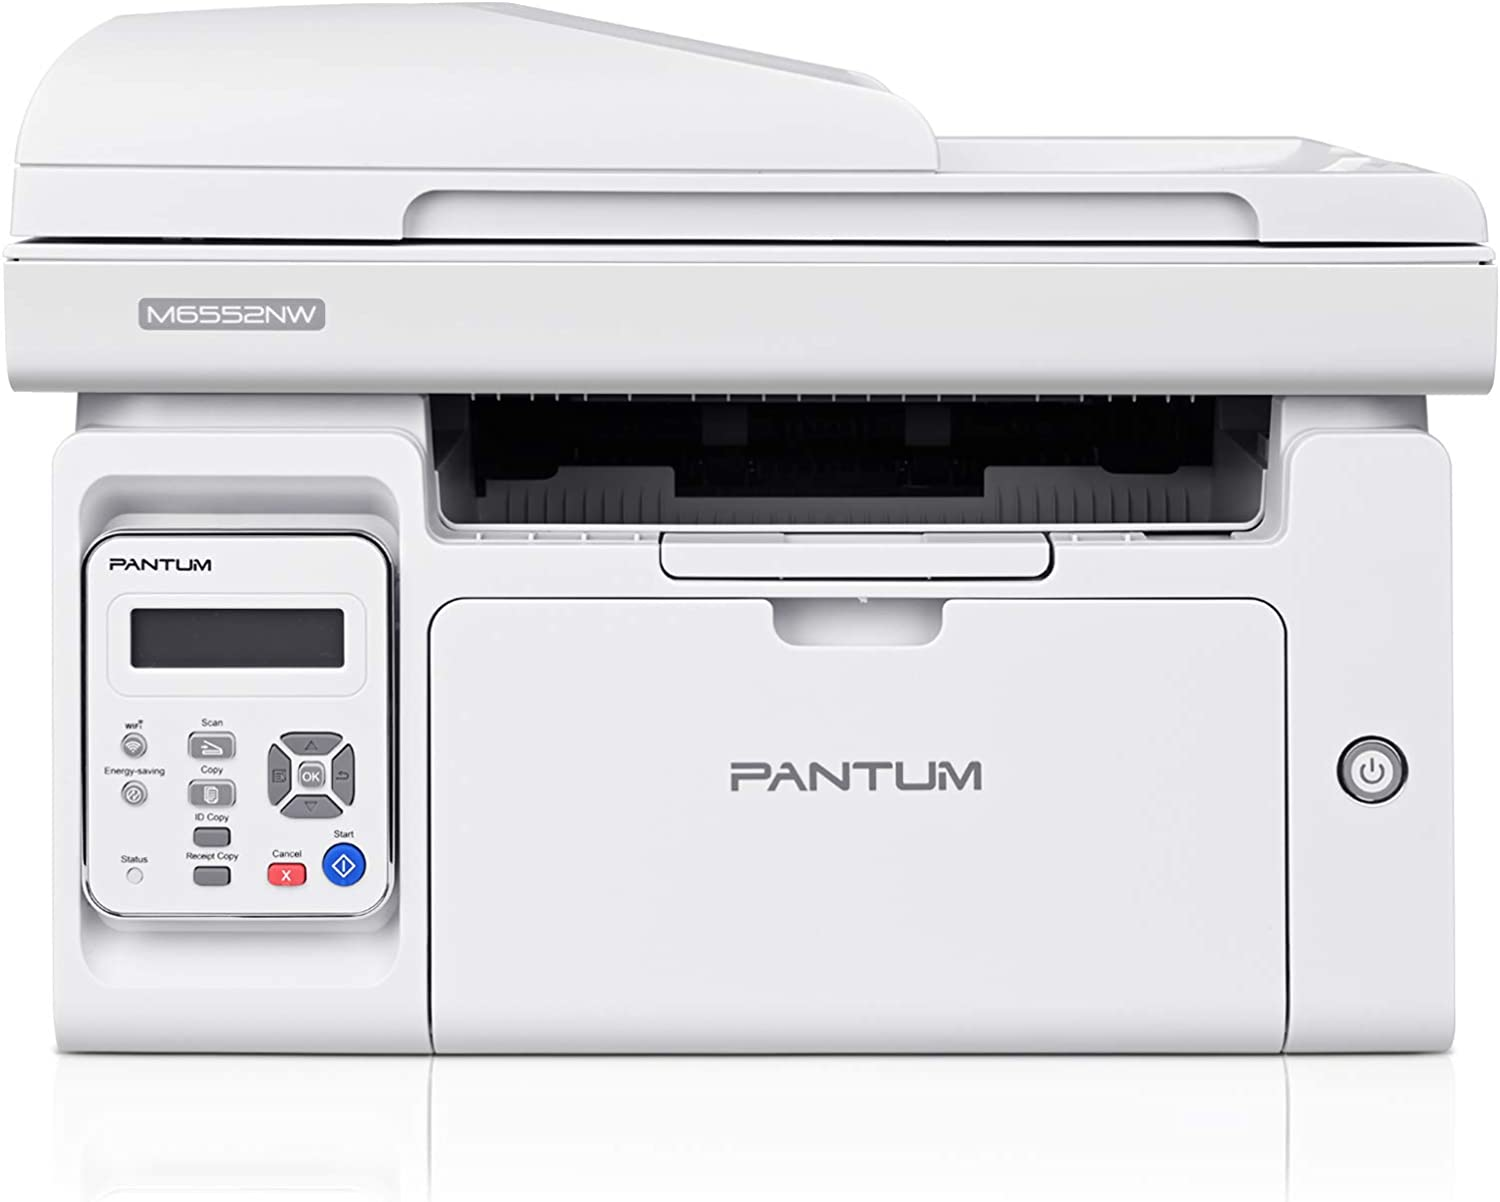 Printer Scanner Copier with ADF, All-in-One Wireless Black and White Laser Printer Print at 23ppm, Pantum M6552NW(V2U93A)